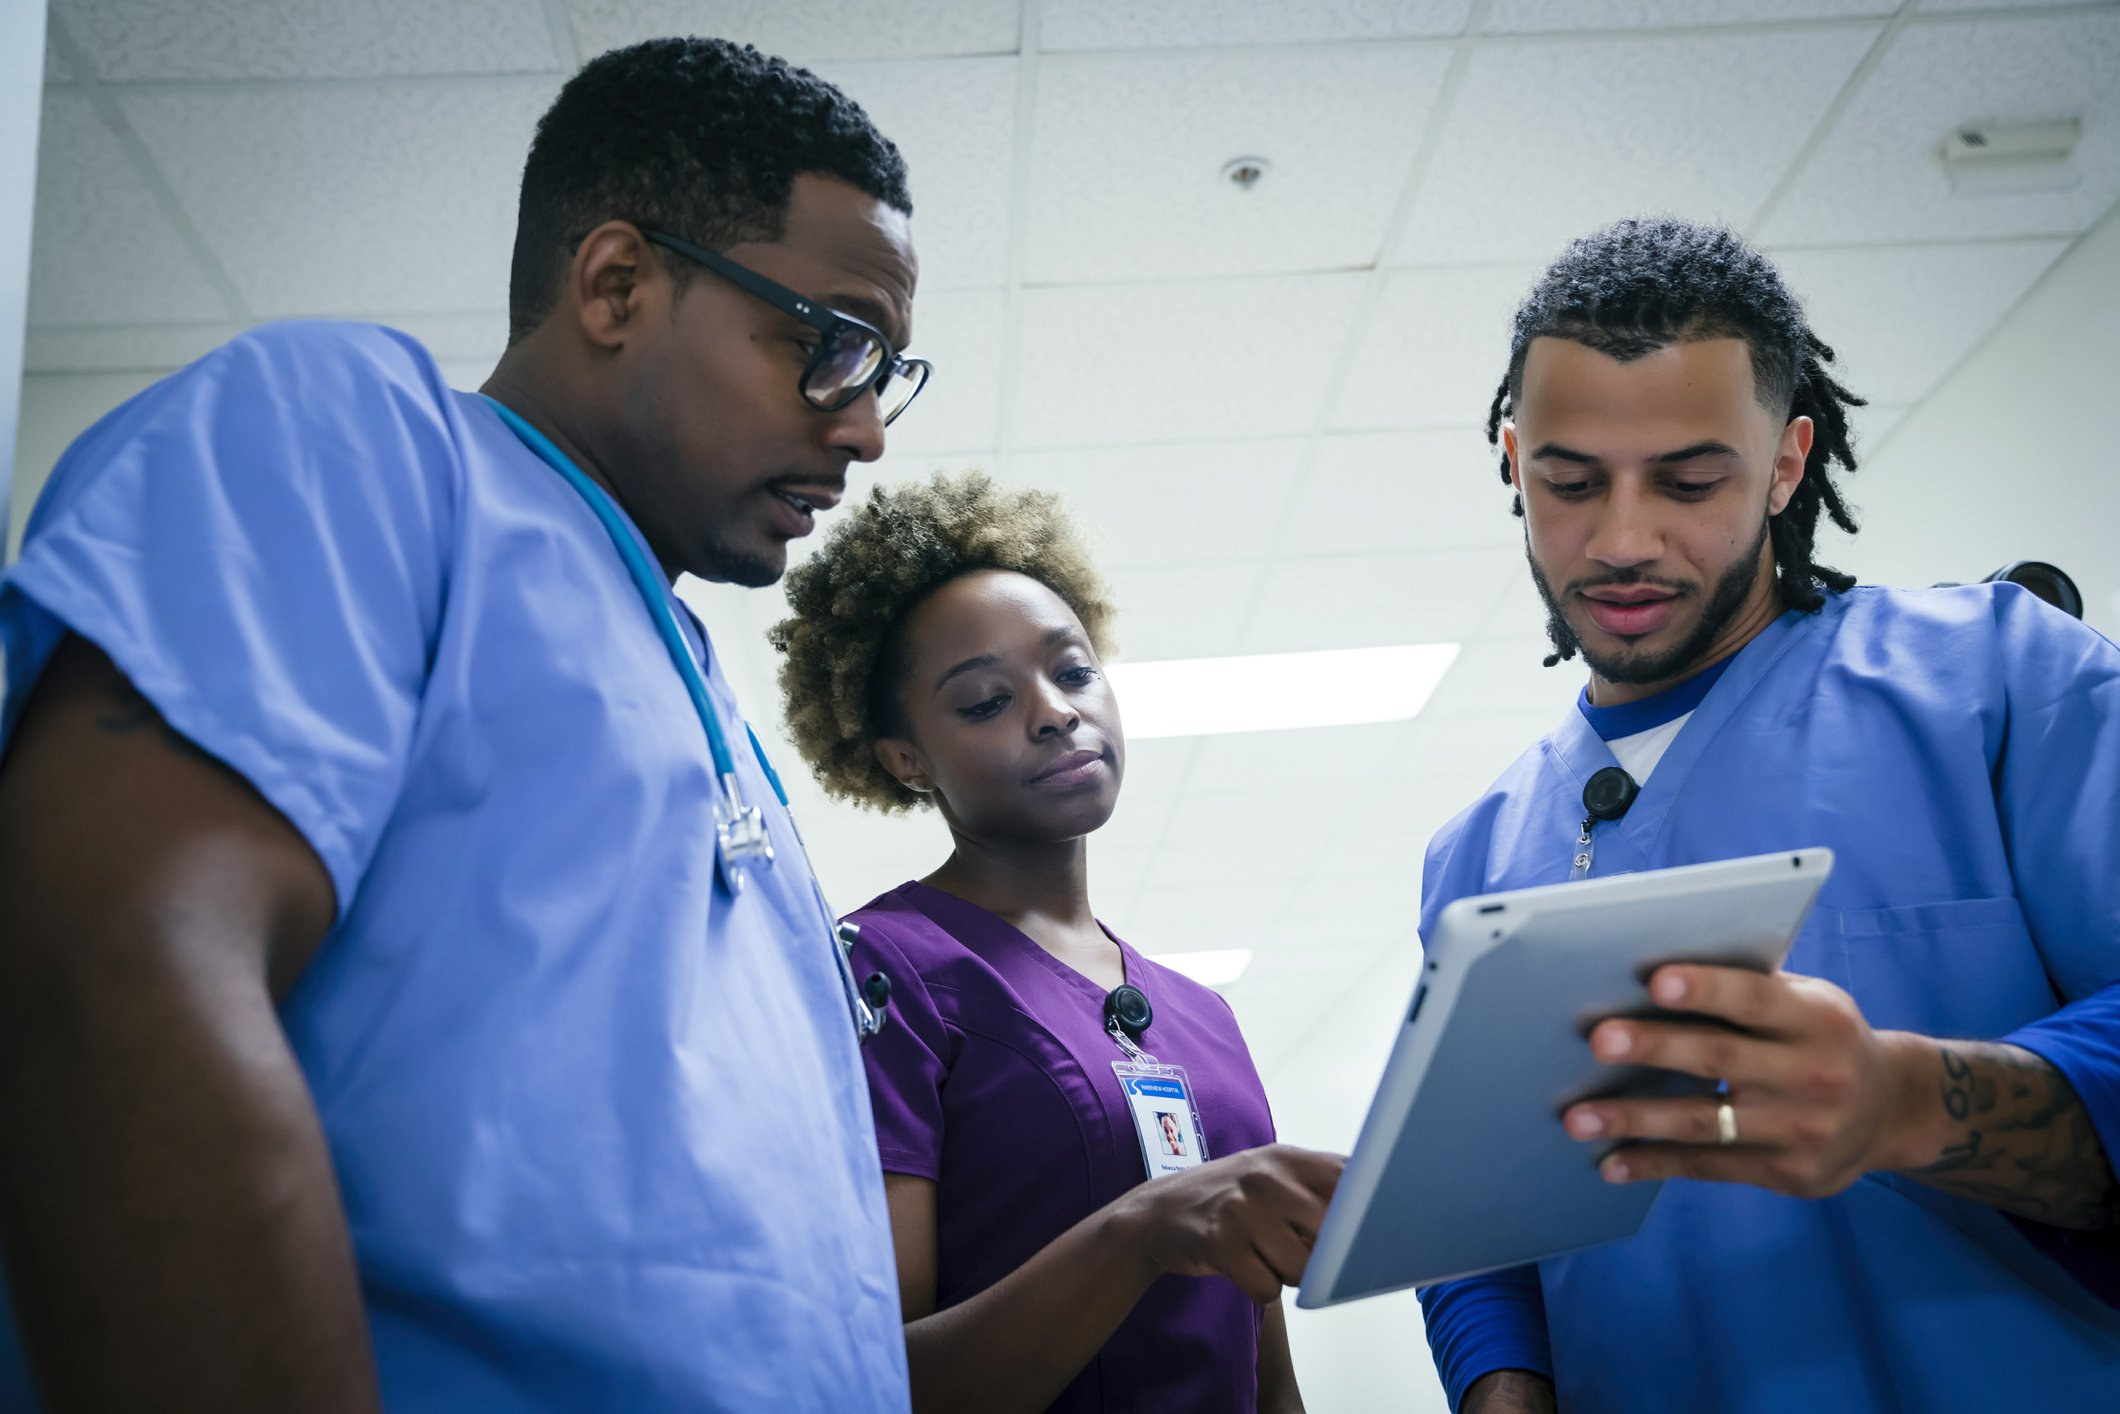 Nurses discussing with a digital tablet   Photo: Getty Images